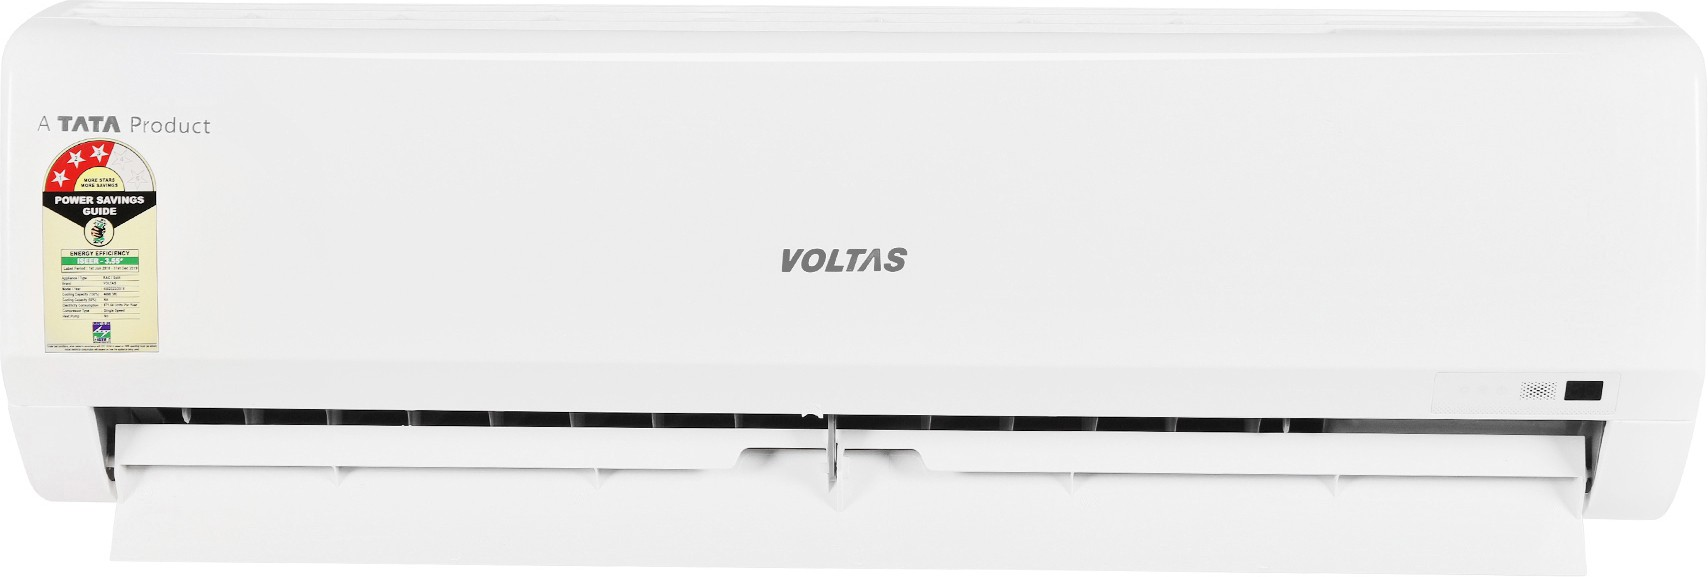 Voltas 153CZD1 1.2 Ton 3 Star BEE Rating 2018 Split AC Image